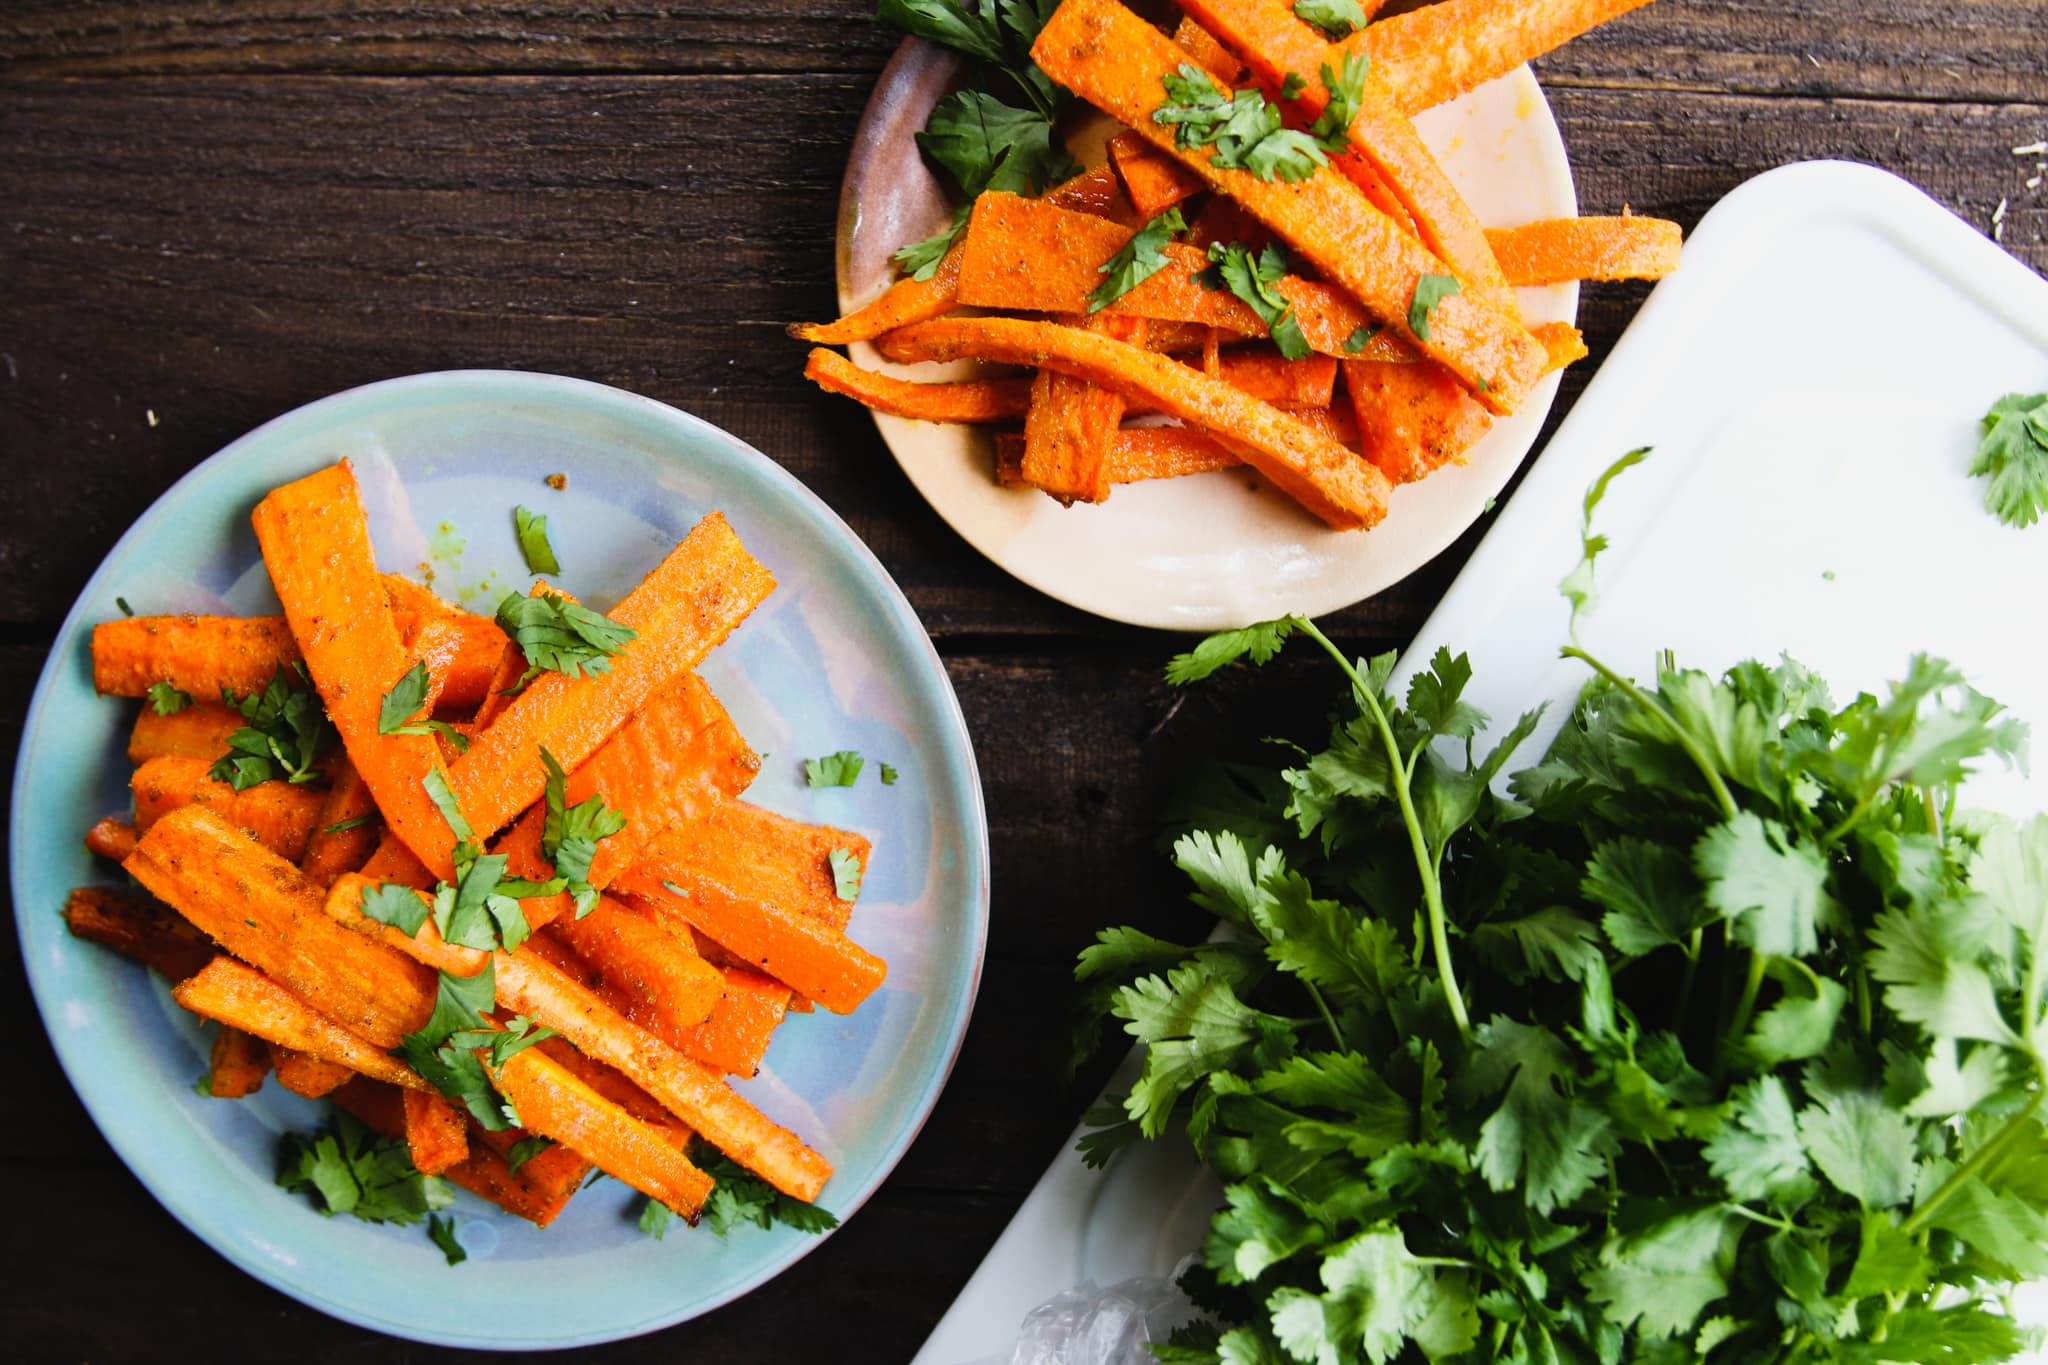 curried carrot fries on plate